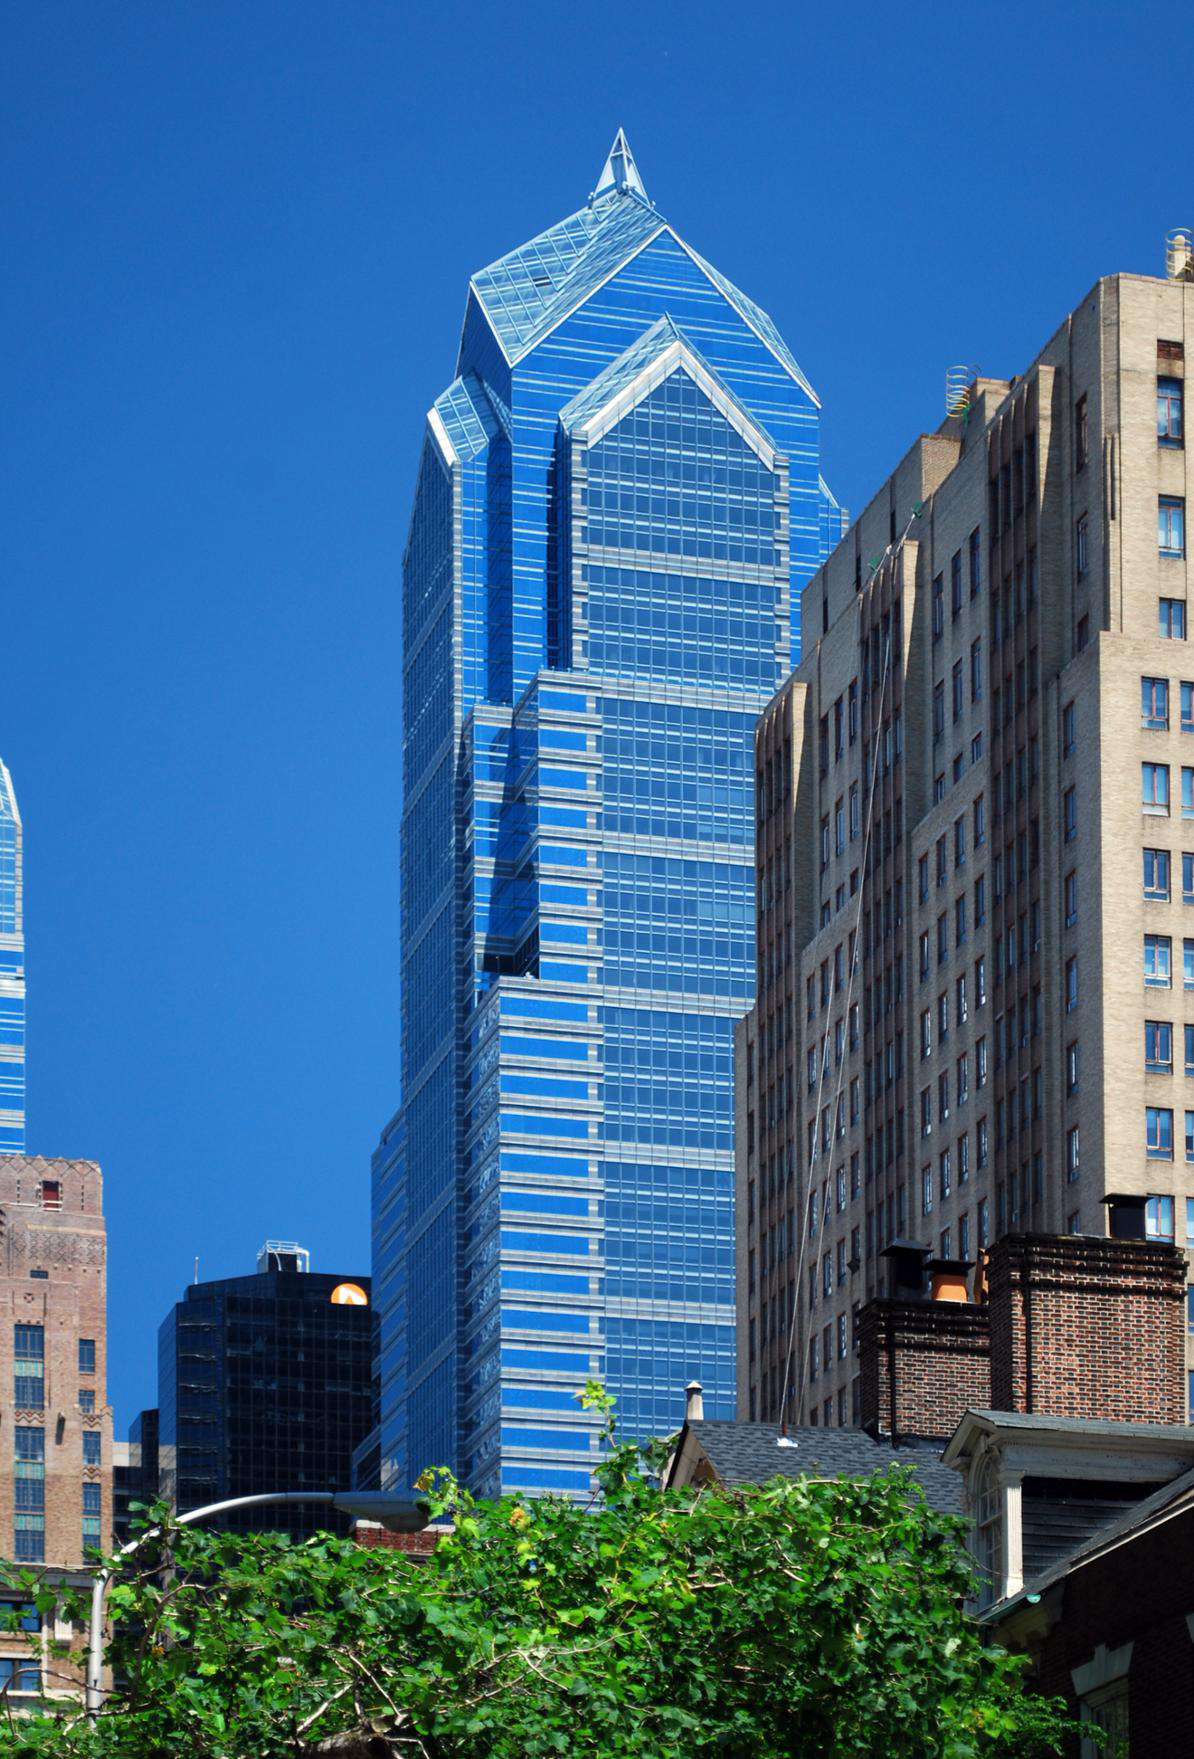 Contact Capital One >> Two Liberty Place Building Image Gallery